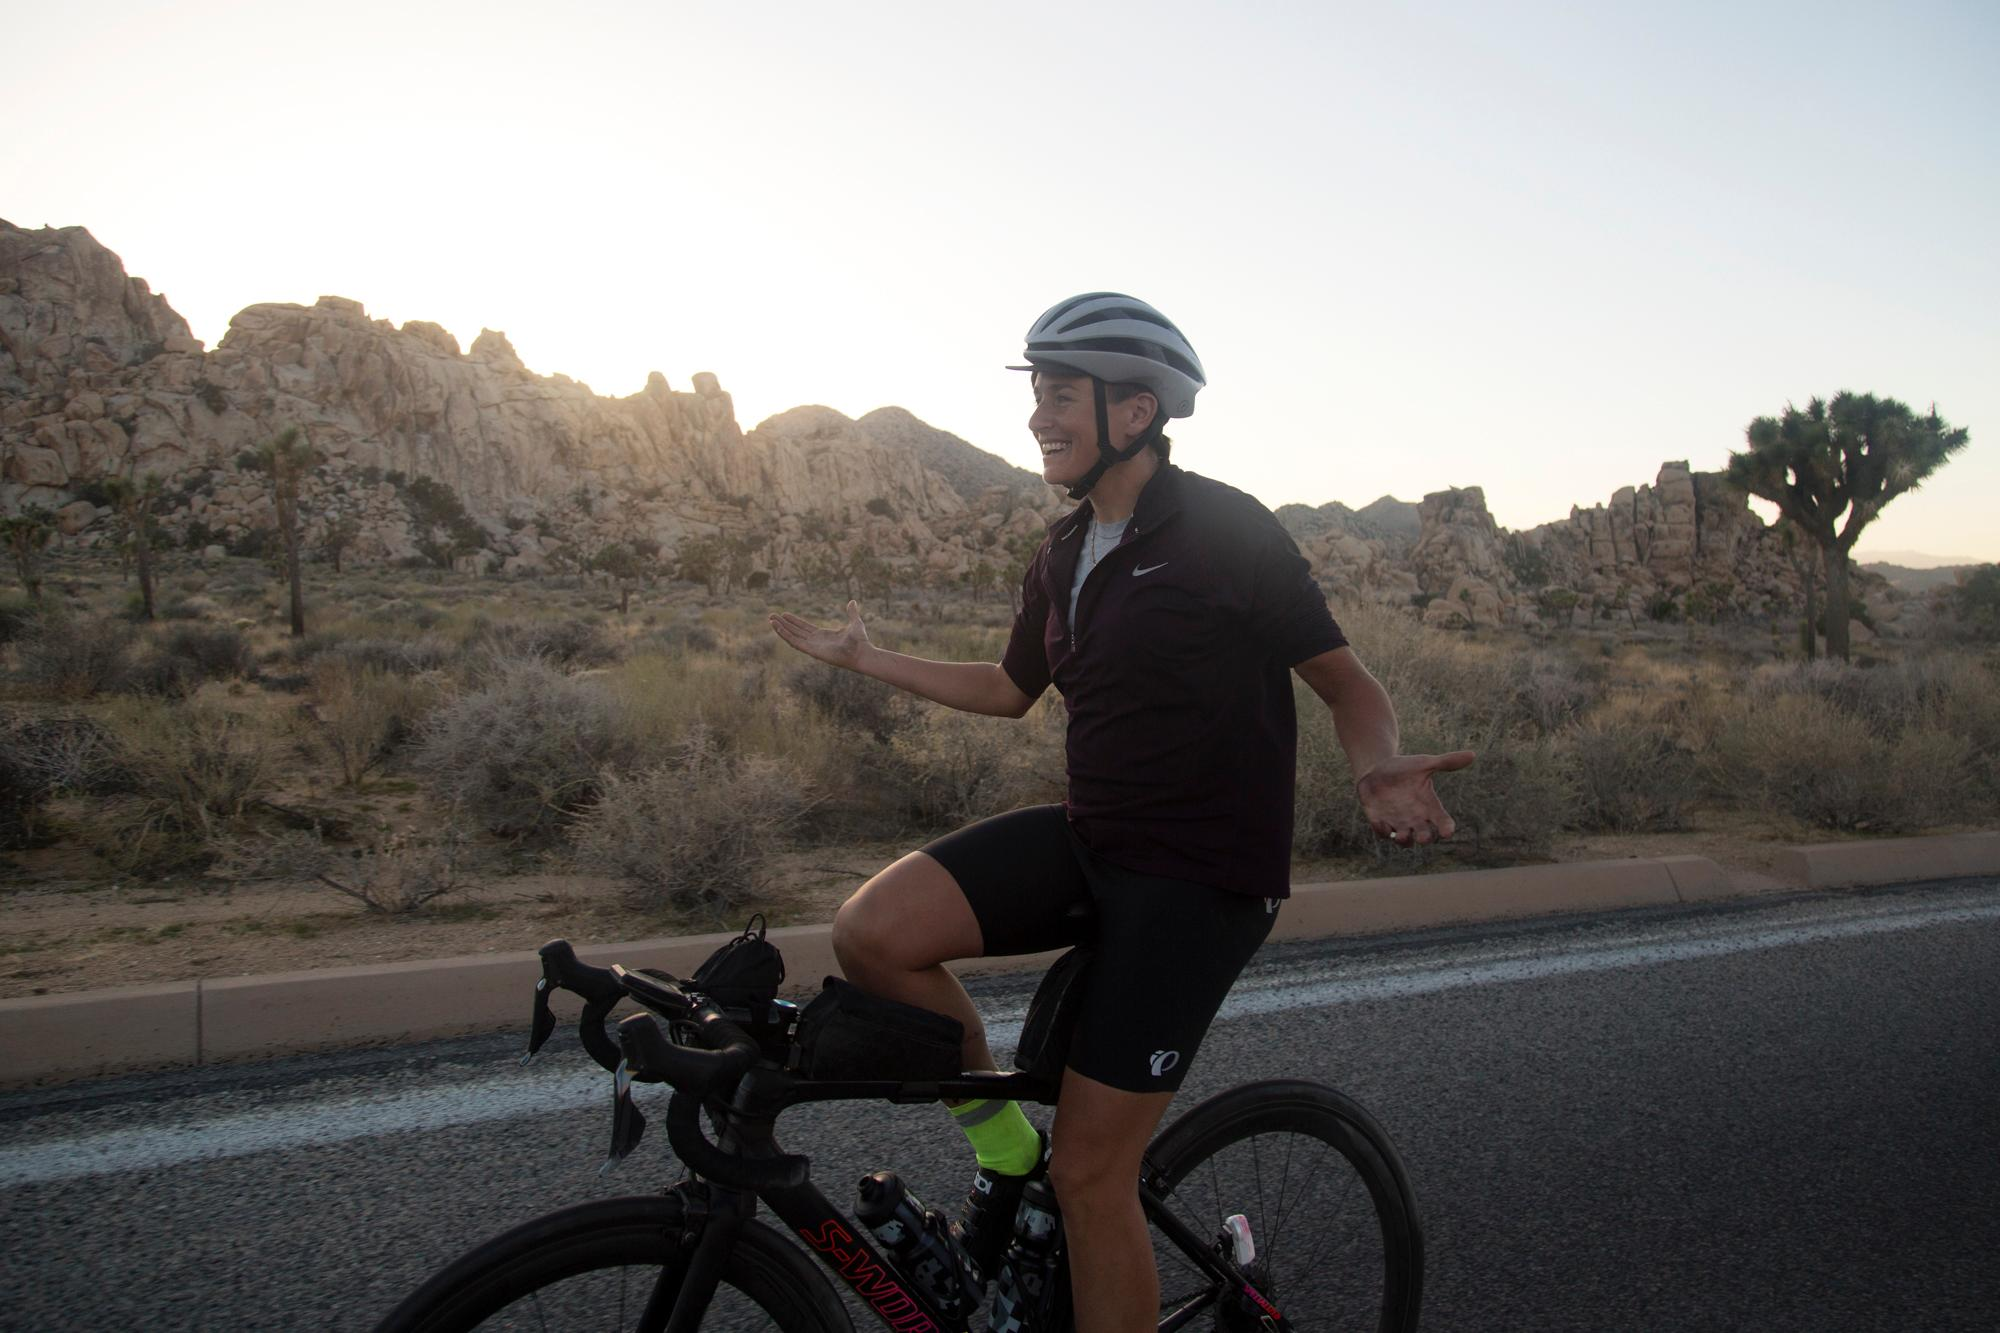 Lael rides in Joshua Tree National Park at sunset. (Rugile Kaladyte)